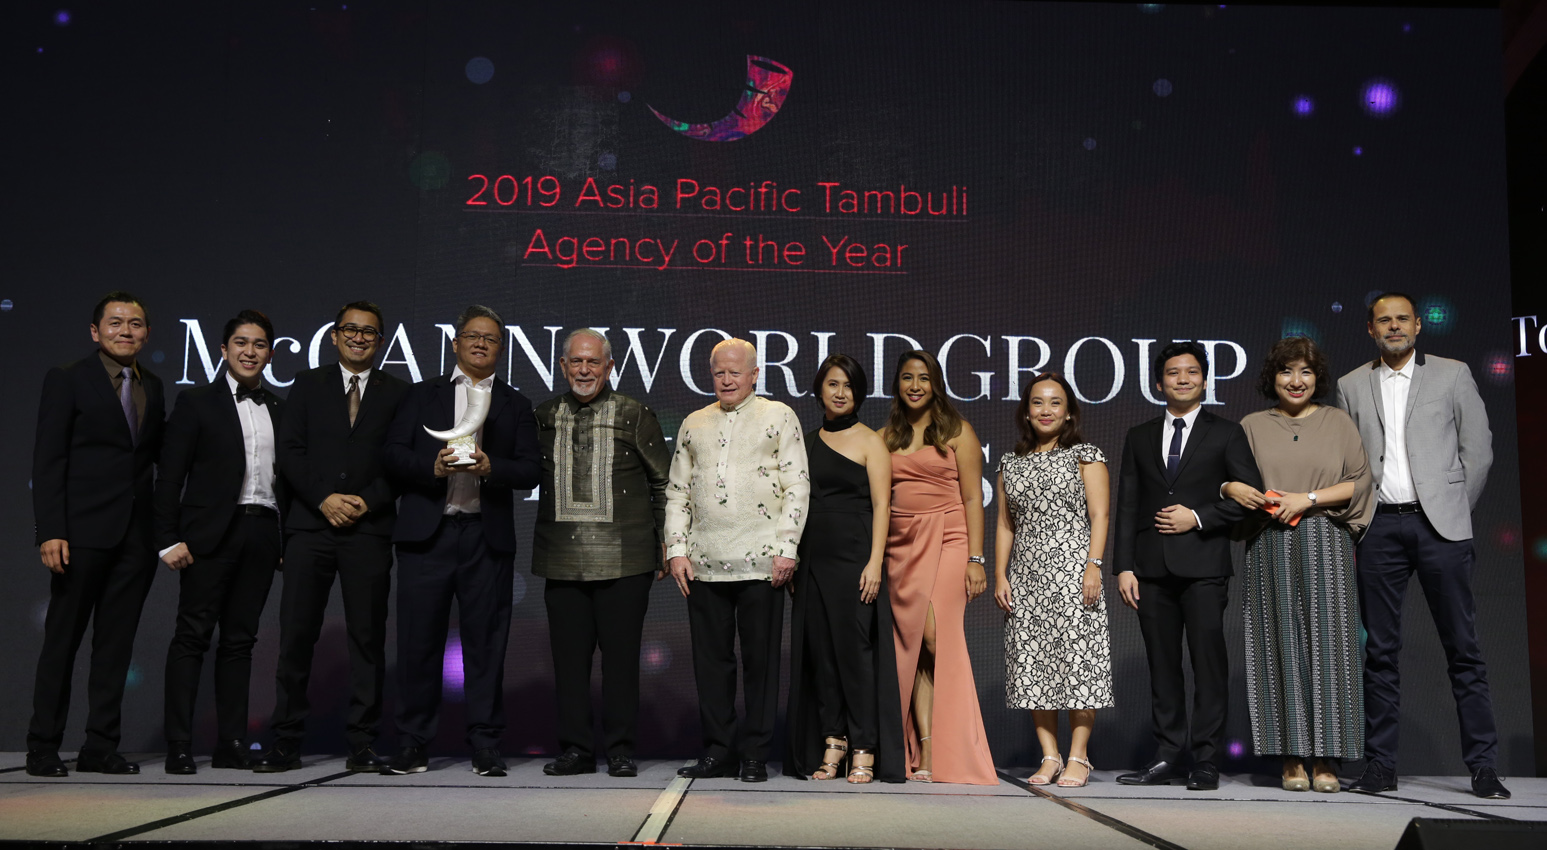 Reprise Malaysia, BWM Dentsu Sydney, whiteGREY Sydney + TBWA Hakuhodo Tokyo win Grand Prix awards at 2019 Asia-Pacific Tambuli Awards: McCann Philippines named Agency of the Year